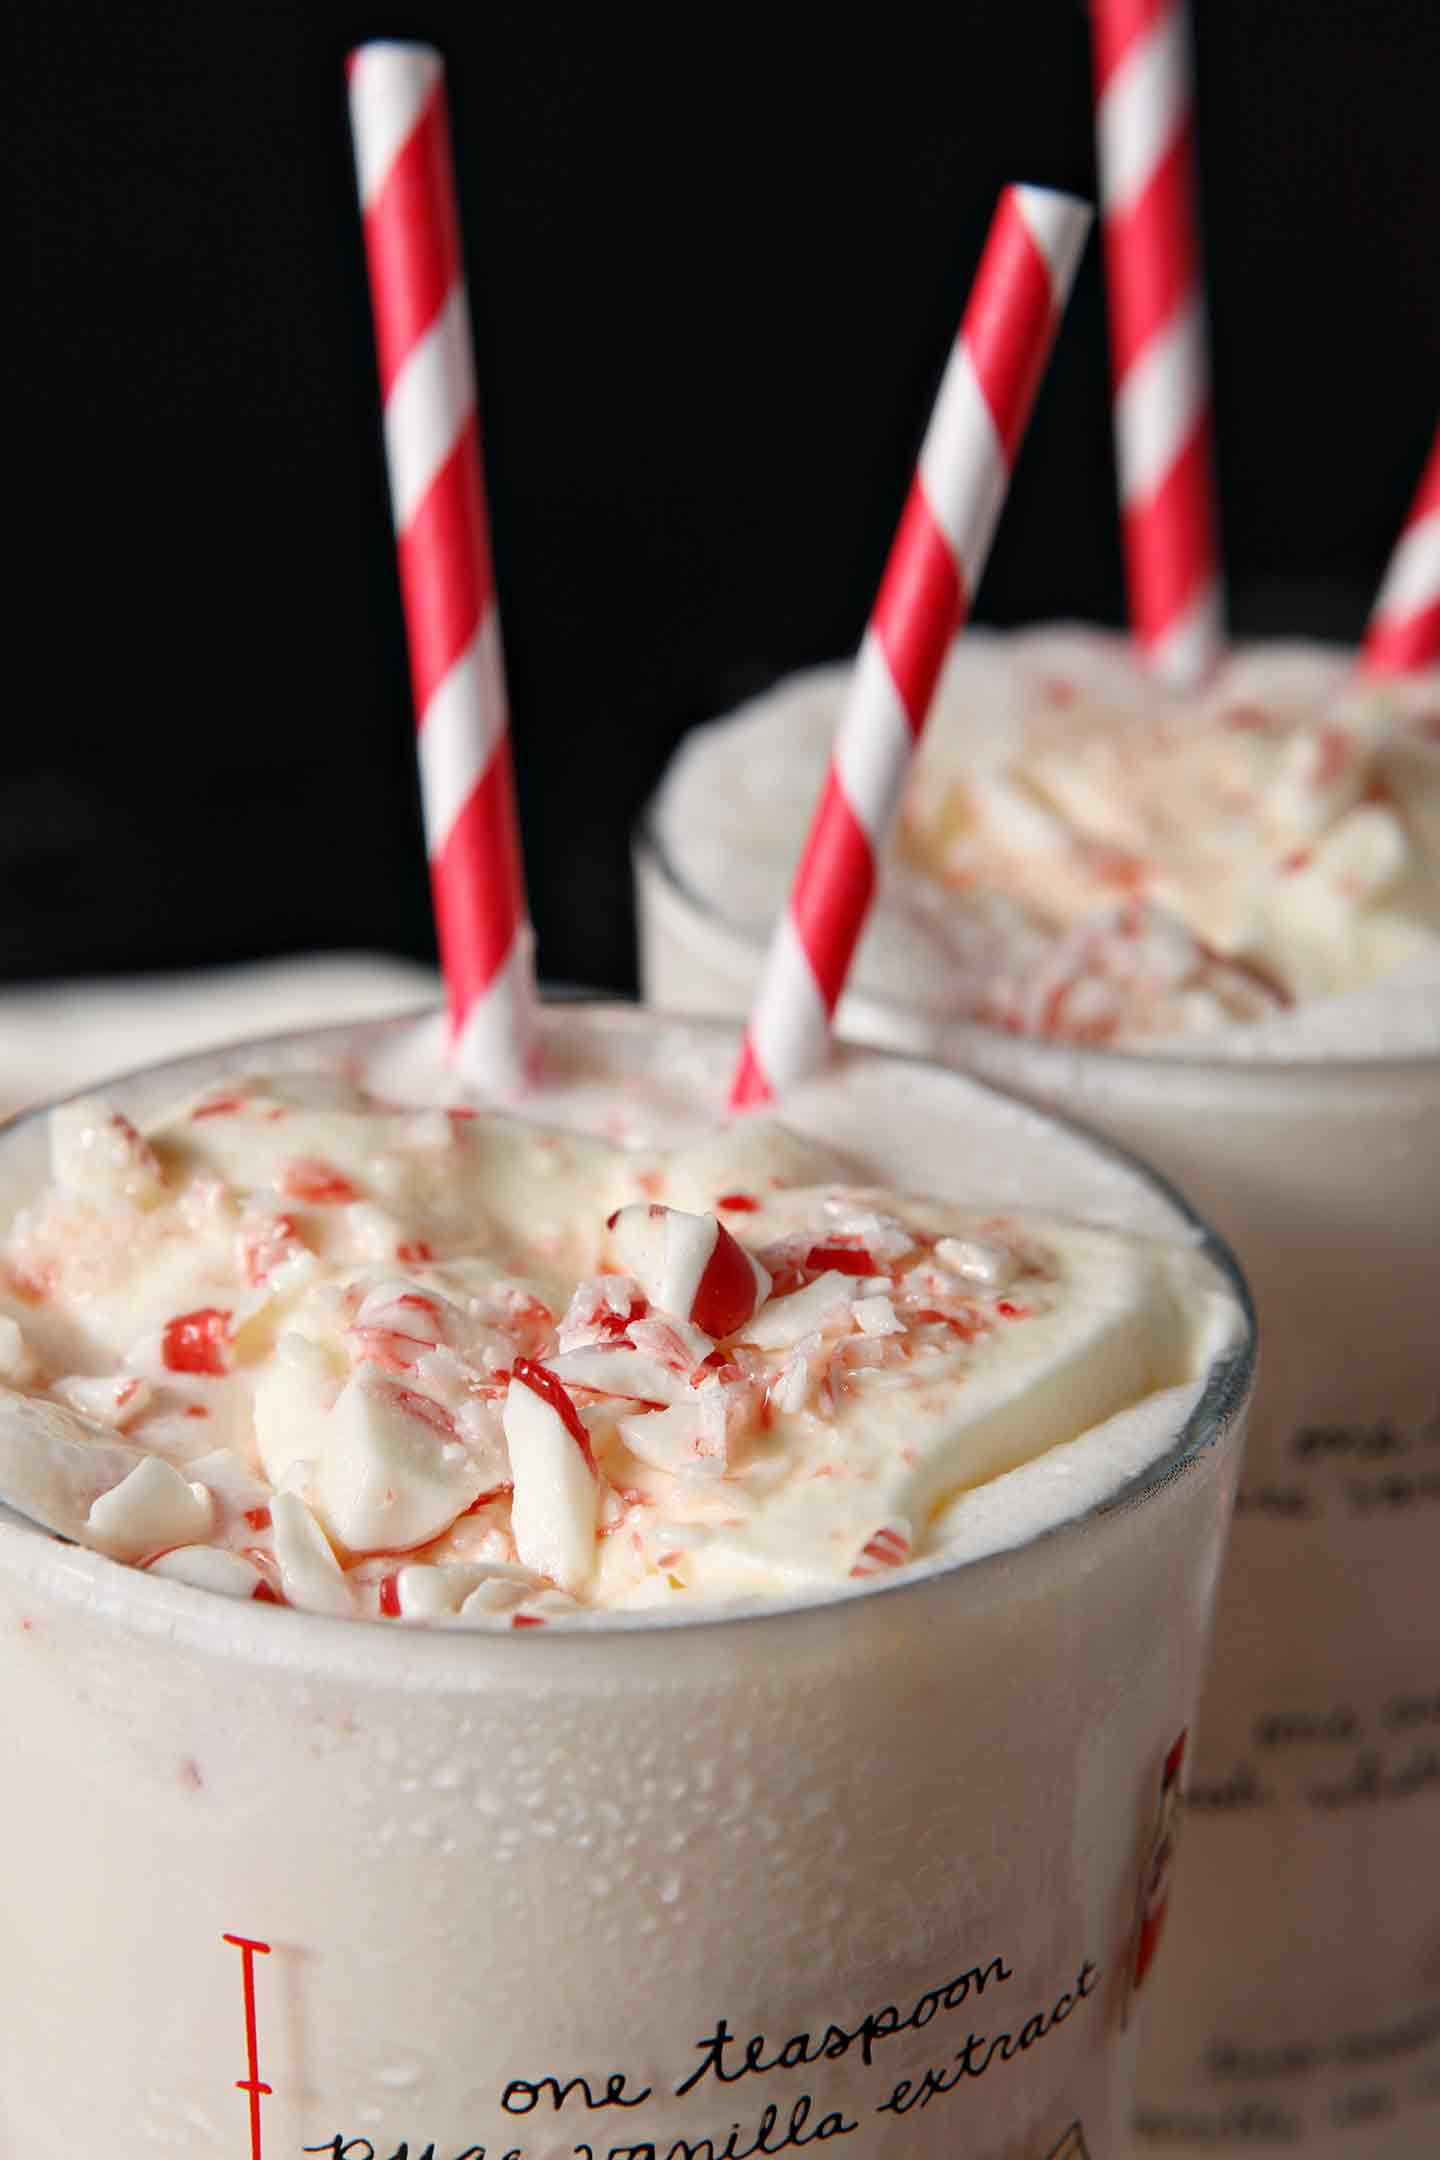 Get in the holiday spirit by whipping up No Churn Peppermint Ice Cream Milkshake! You don't need an ice cream maker for this recipe. Whip heavy whipping cream, then add sweetened condensed milk, pure peppermint extract and candy cane pieces. Stir gently until combined, then freeze. When it's time to make the milkshake, scoop the ice cream into a blender, and mix with milk. A smooth, pepperminty shake is the BEST holiday dessert! #spon